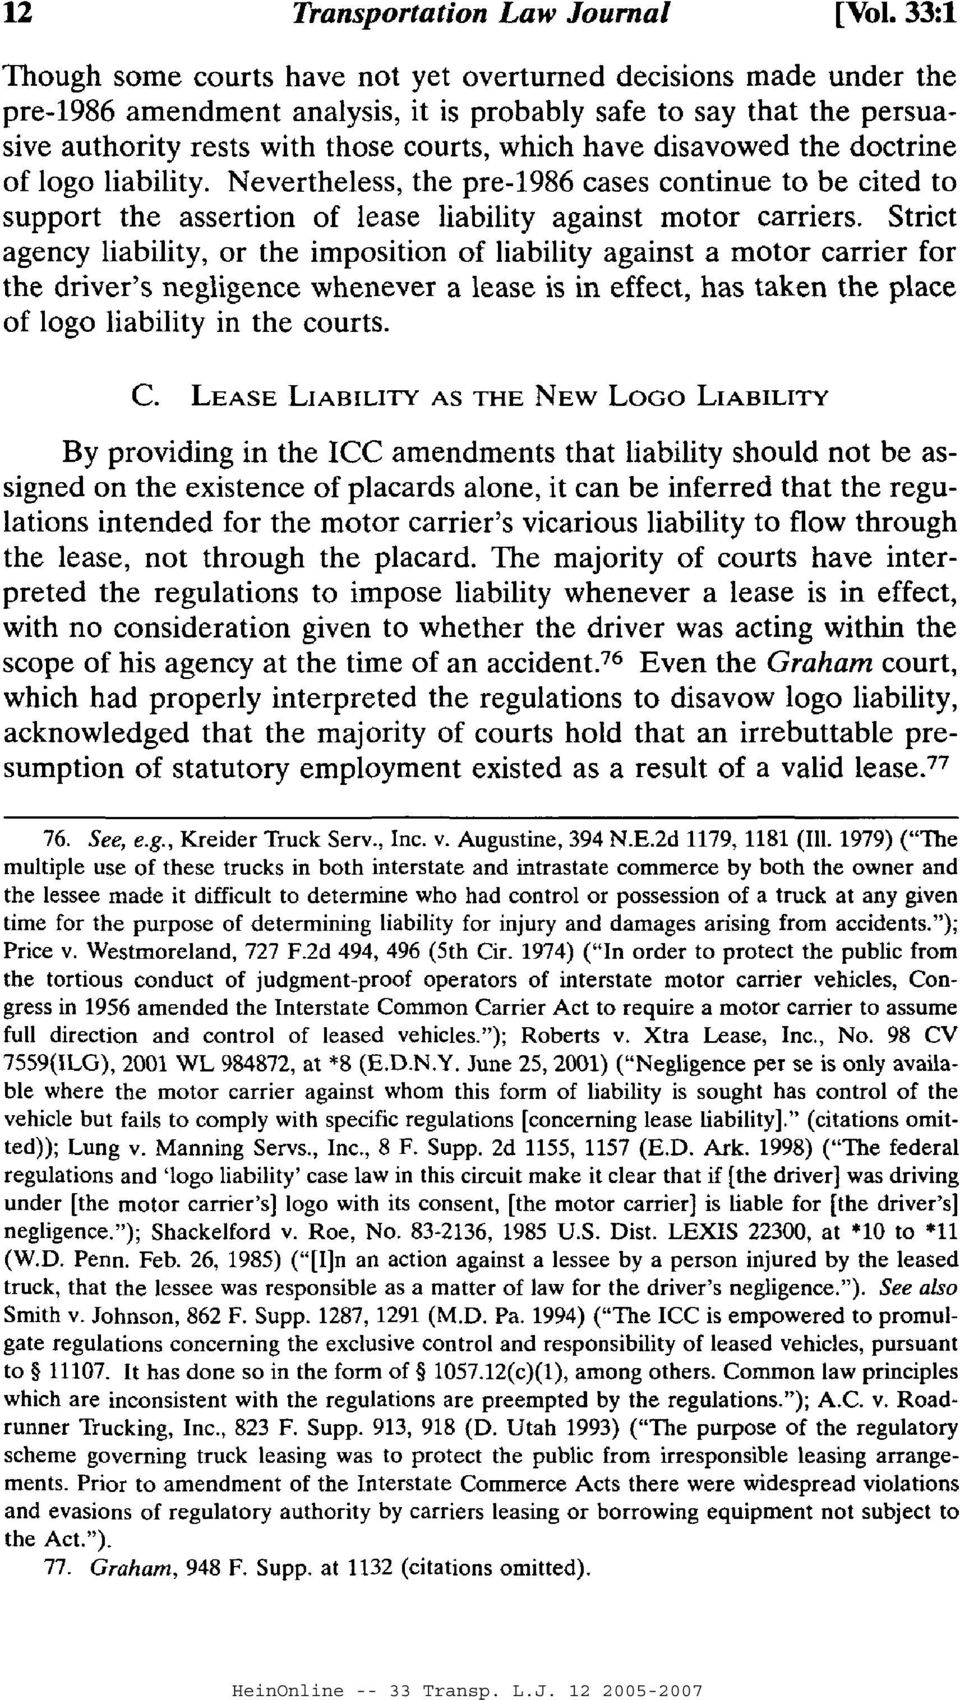 disavowed the doctrine of logo liability. Nevertheless, the pre-1986 cases continue to be cited to support the assertion of lease liability against motor carriers.